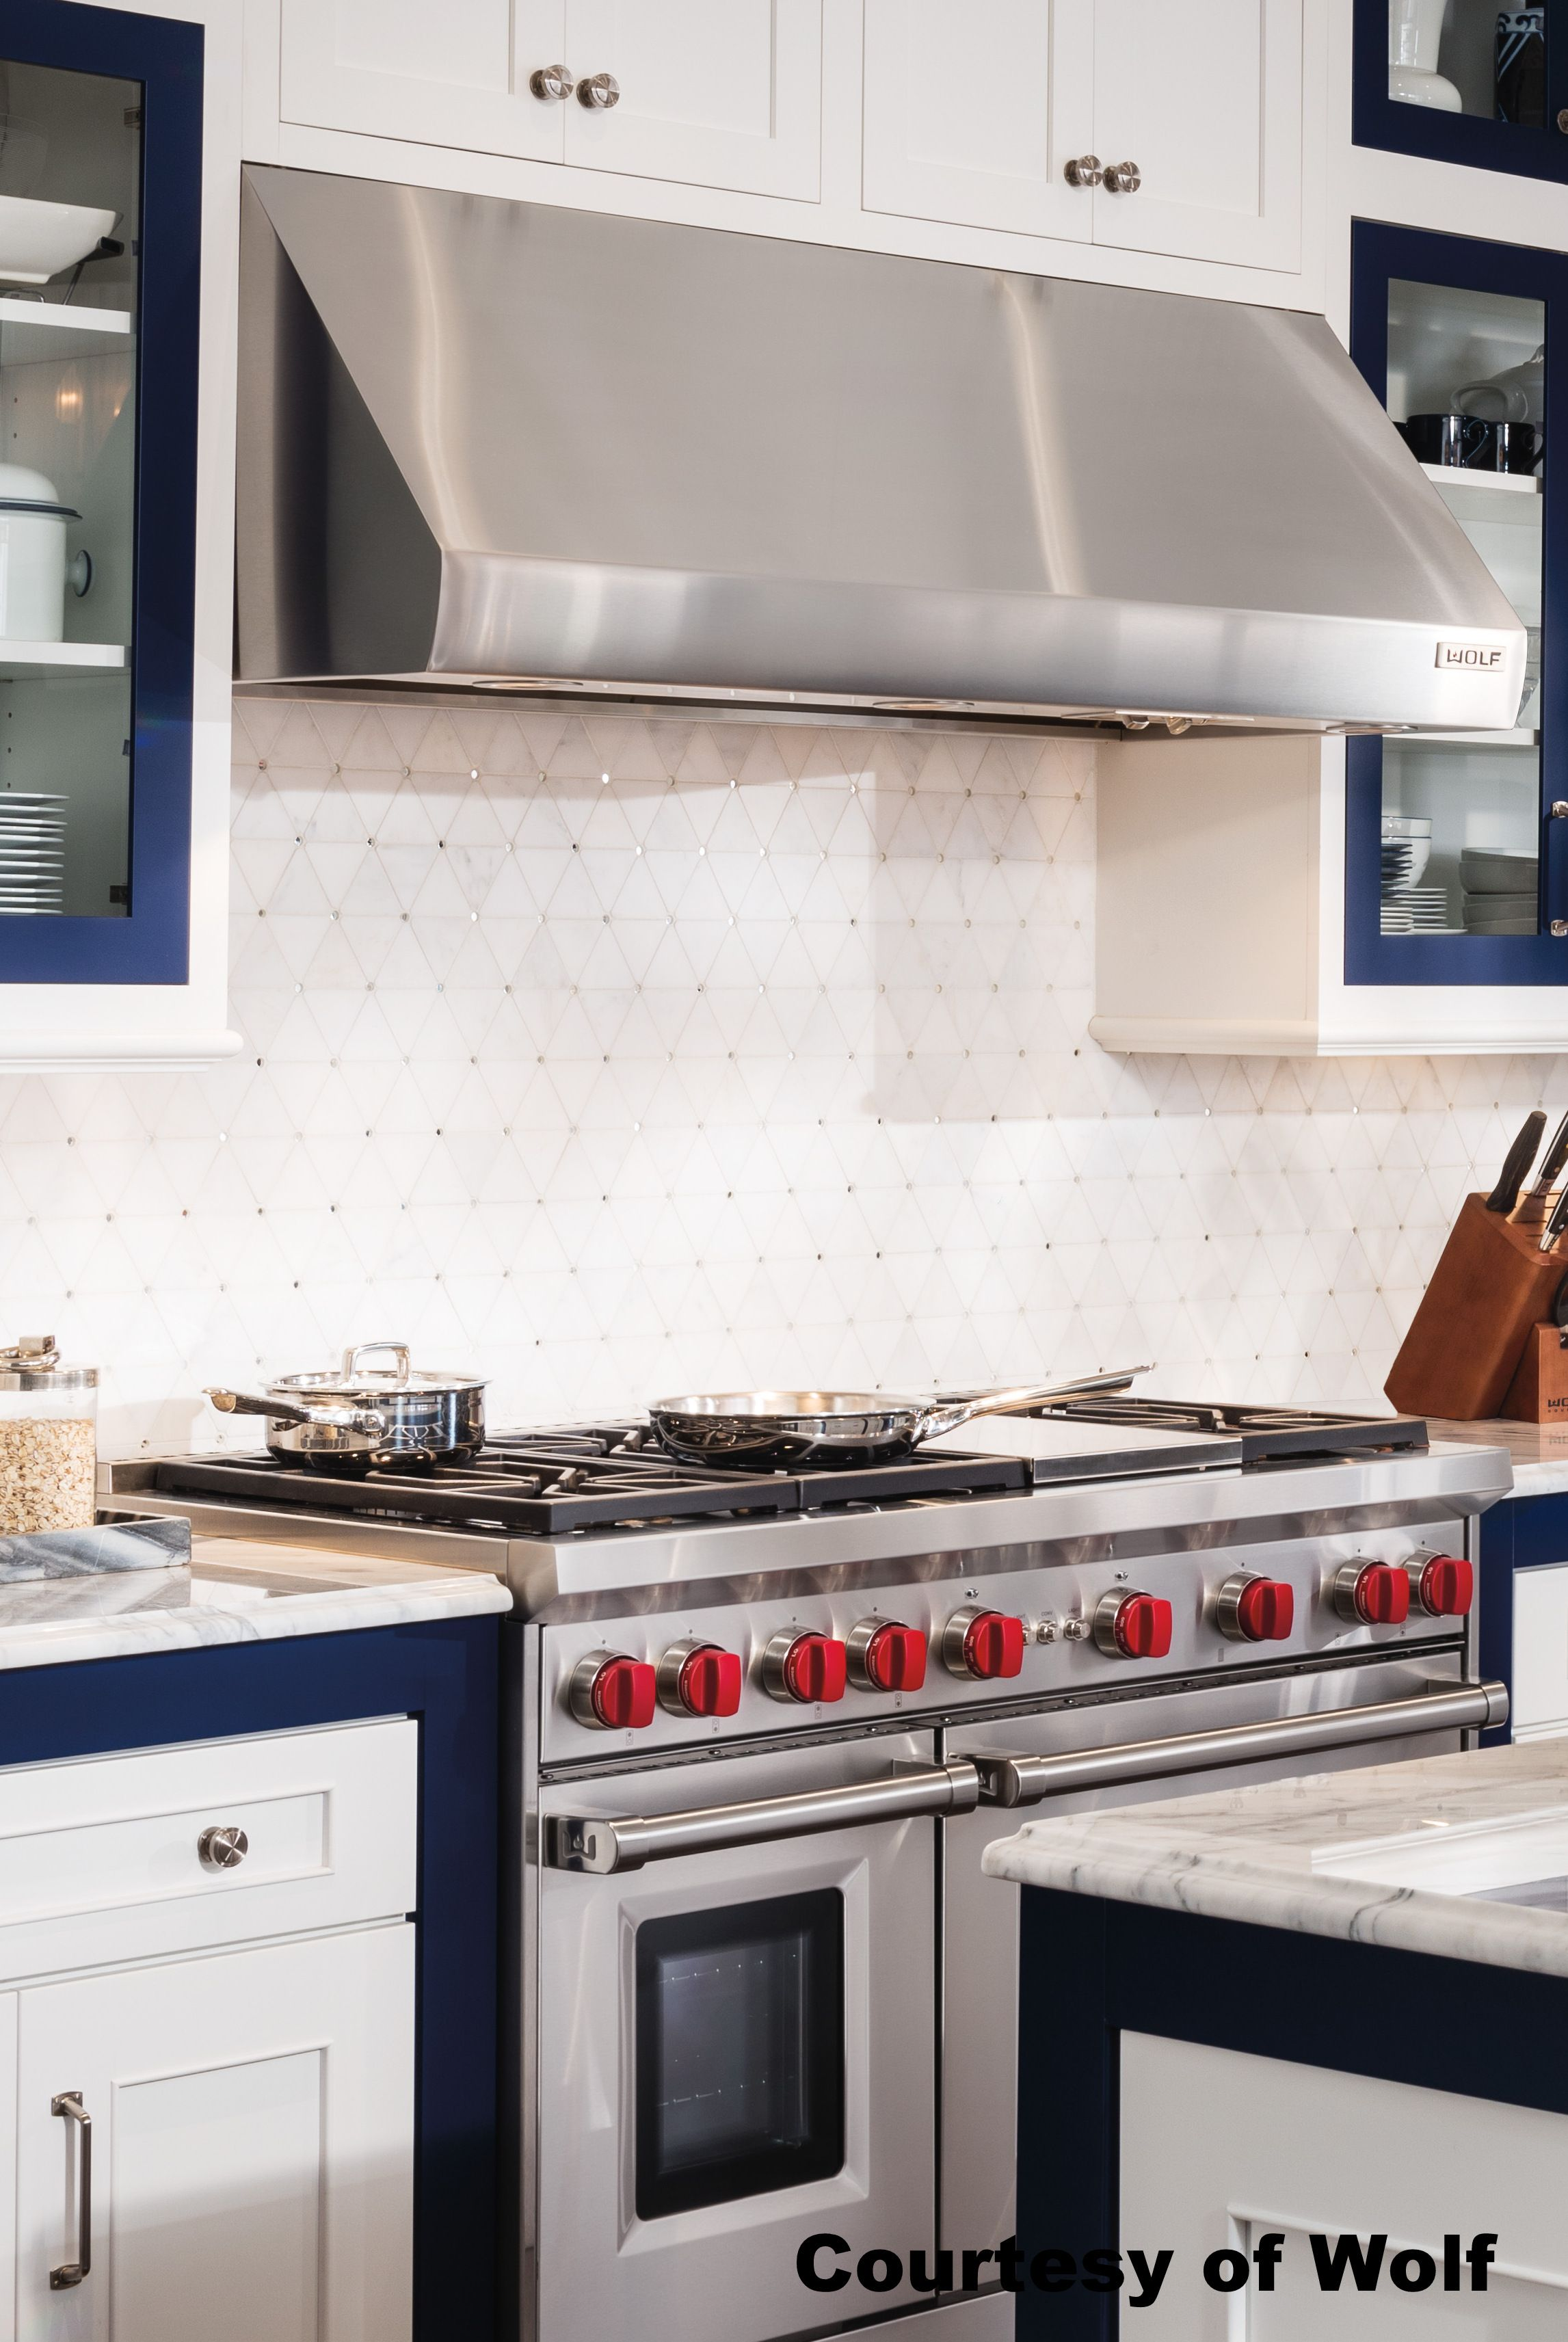 A range hood mounted against a wall is the most effective way to a range hood mounted against a wall is the most effective way to get rid of dailygadgetfo Choice Image